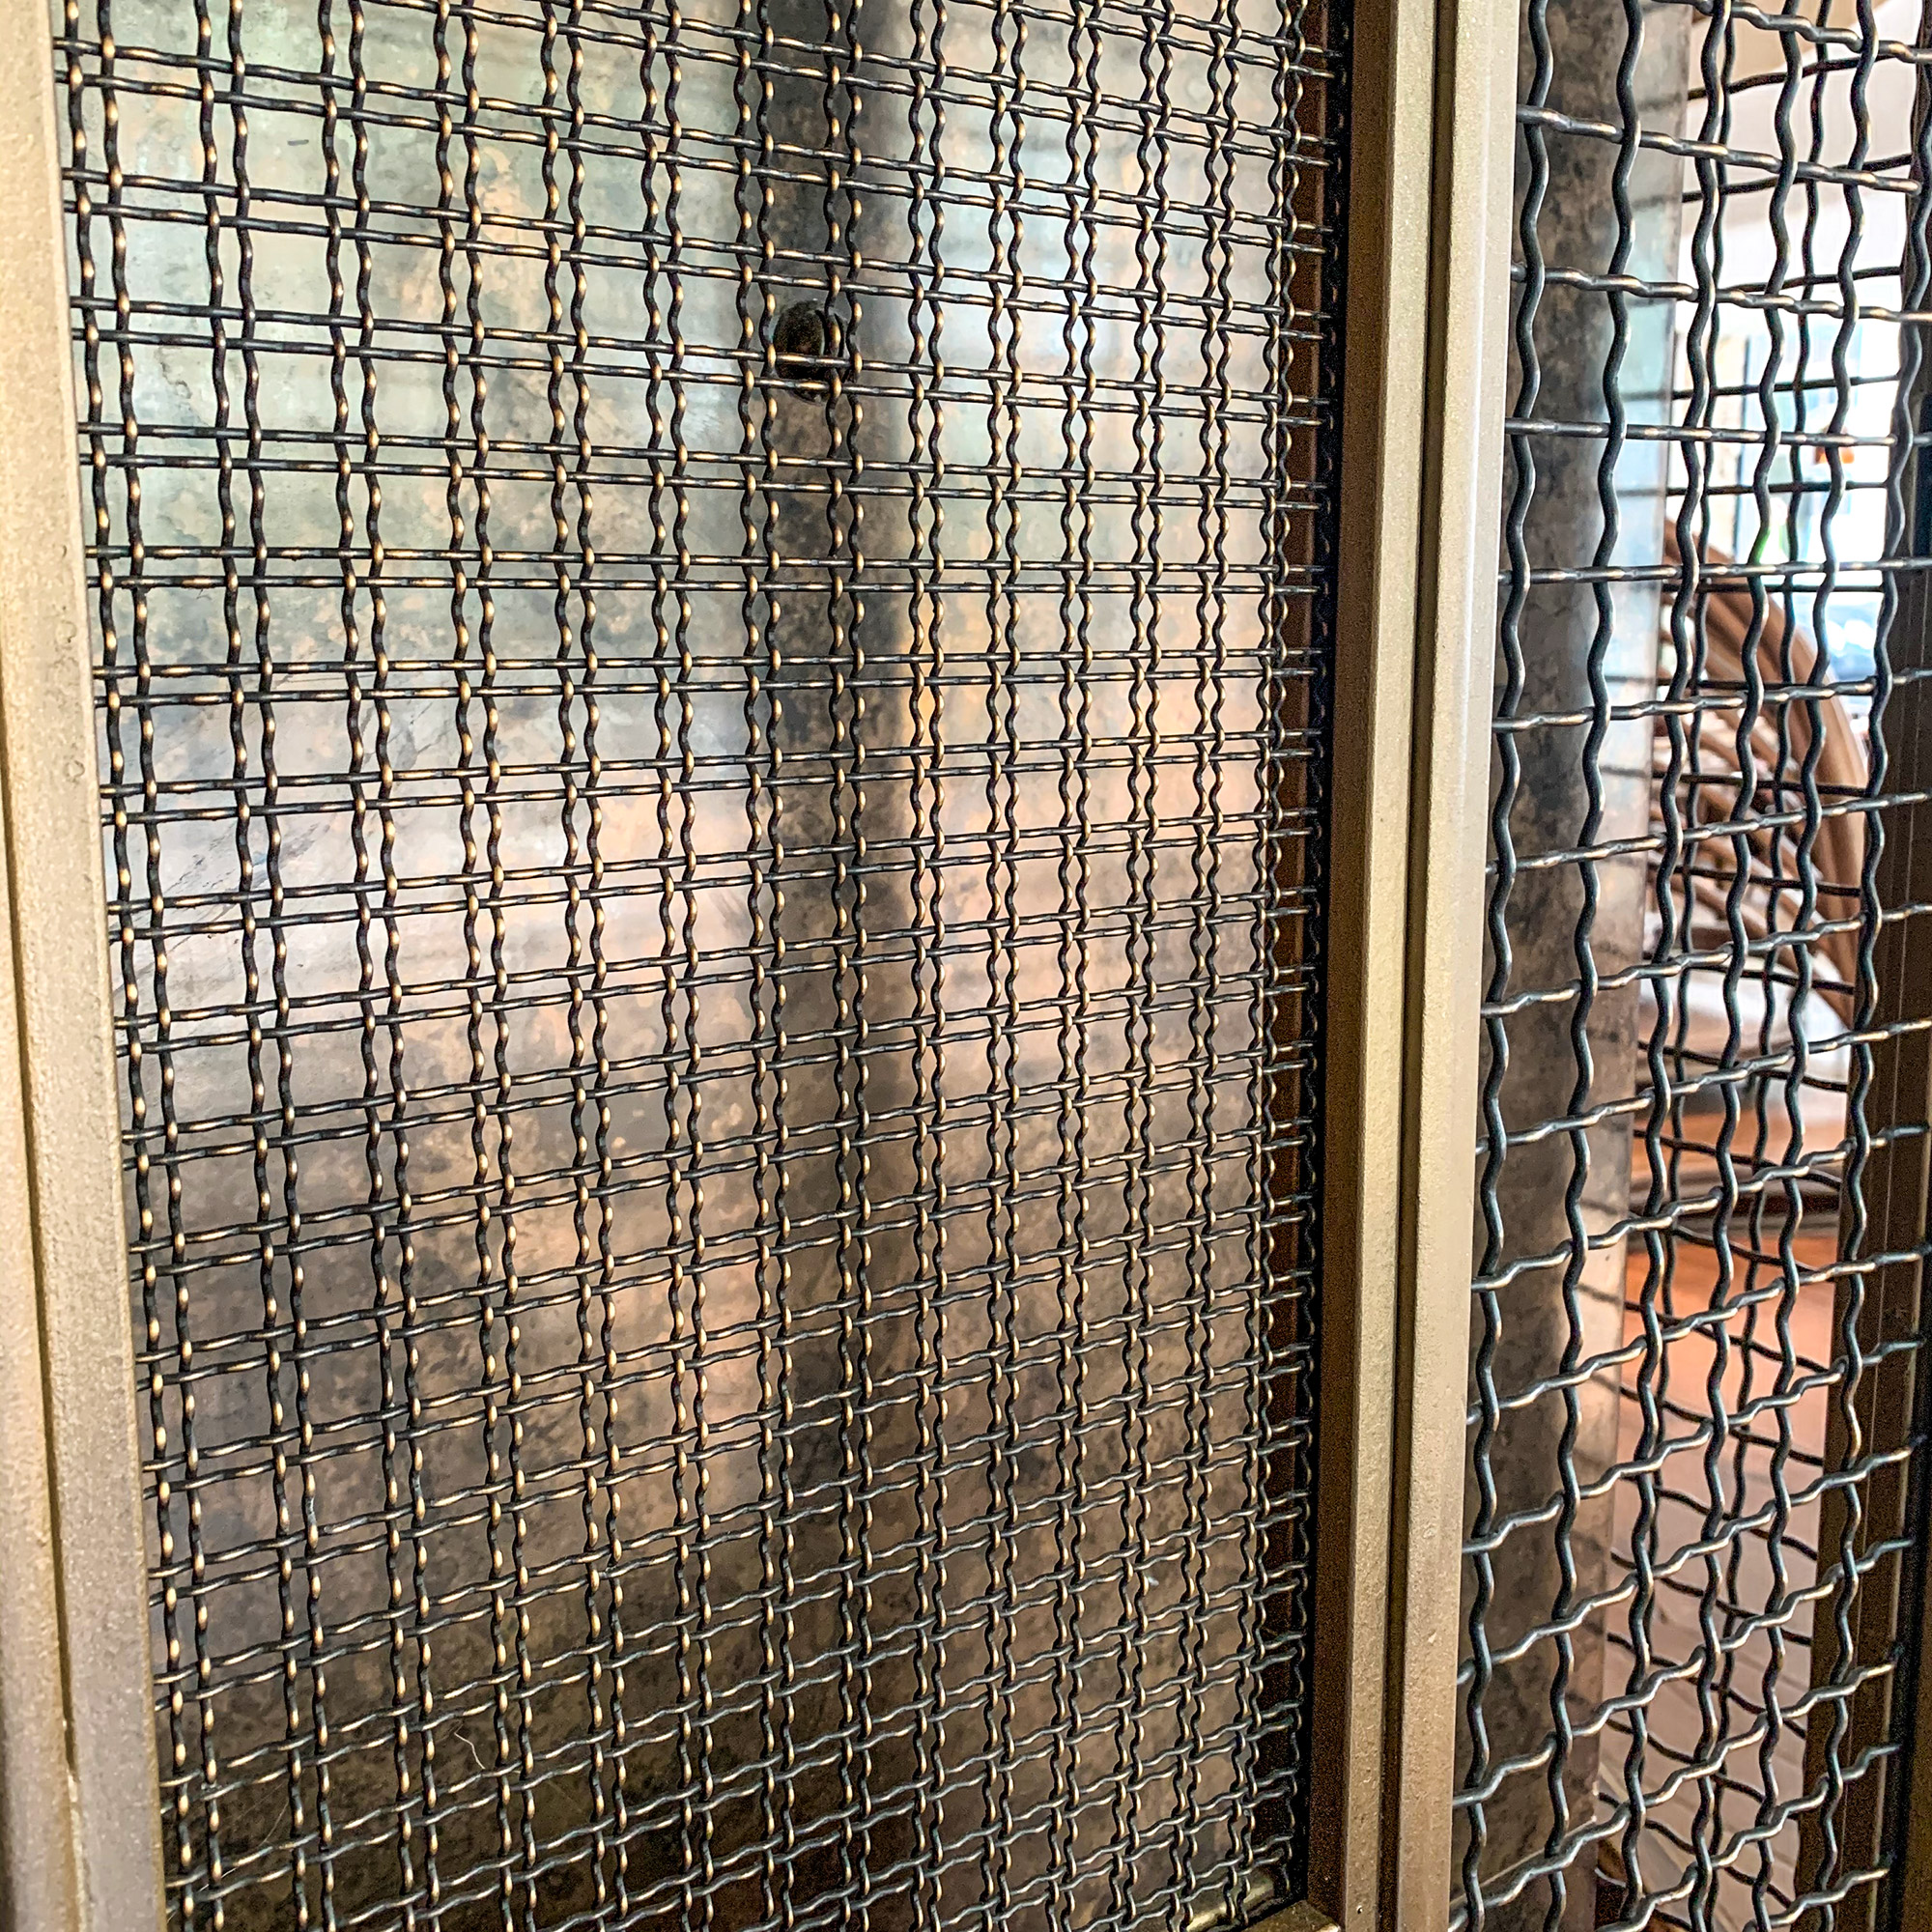 The antique brass secondary finish adds depth and dimension to the cladding using Banker Wire's M22-28 and I-188 woven wire mesh.